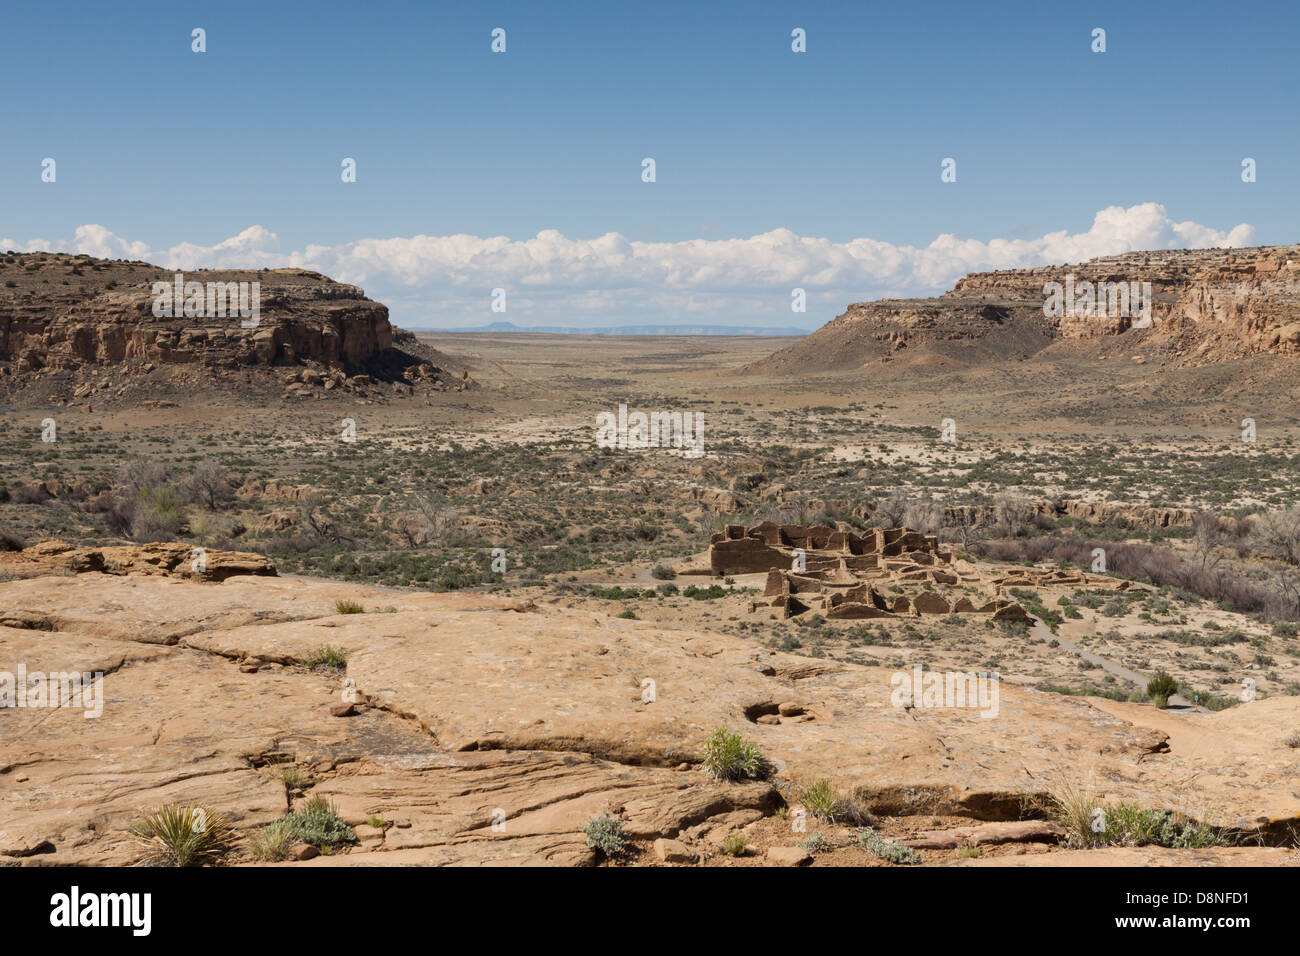 View of Chaco Culture National Historical Park from overlook above Chaco canyon.  Ancient road can be seen in distance - Stock Image